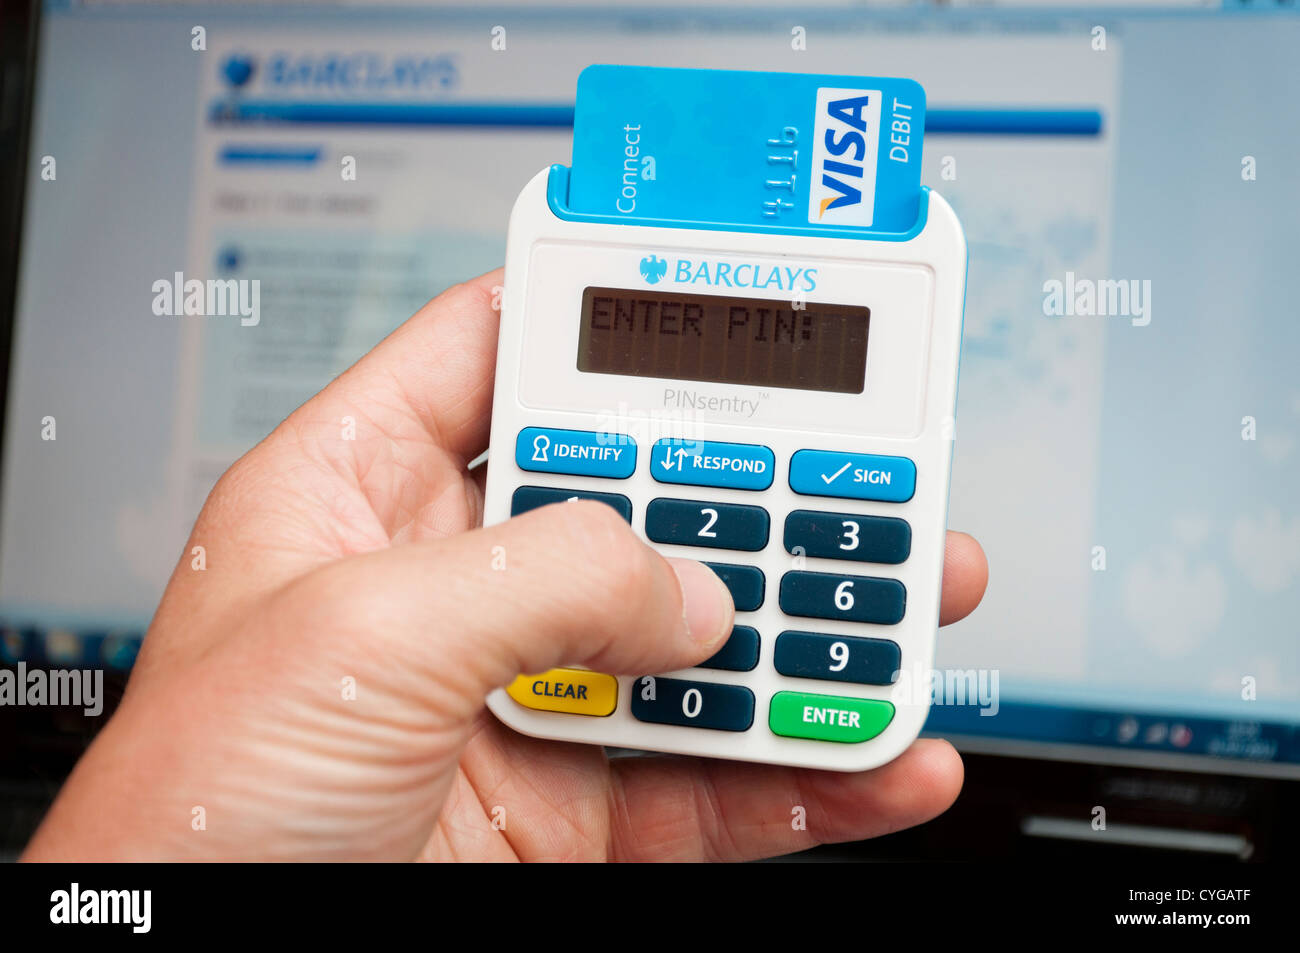 Online banking PINsentry security chip and pin card reader for authorising transactions through Barclays Bank account. - Stock Image